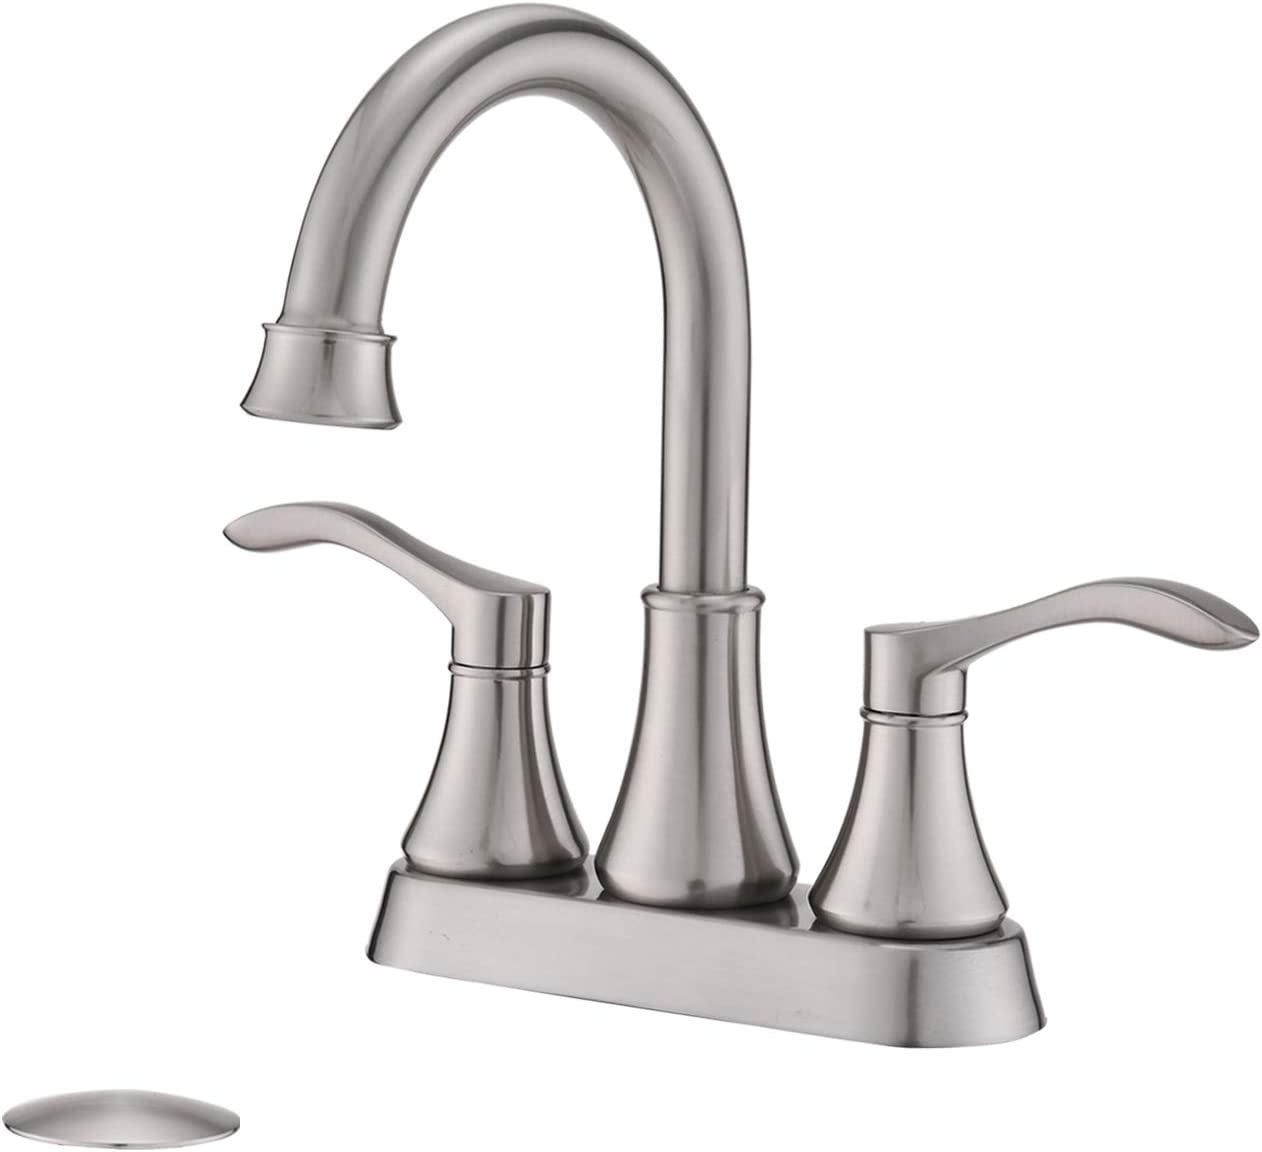 2 Challenge the Phoenix Mall lowest price of Japan ☆ Handle Bathroom Faucet Brushed Inch F 4 Sink